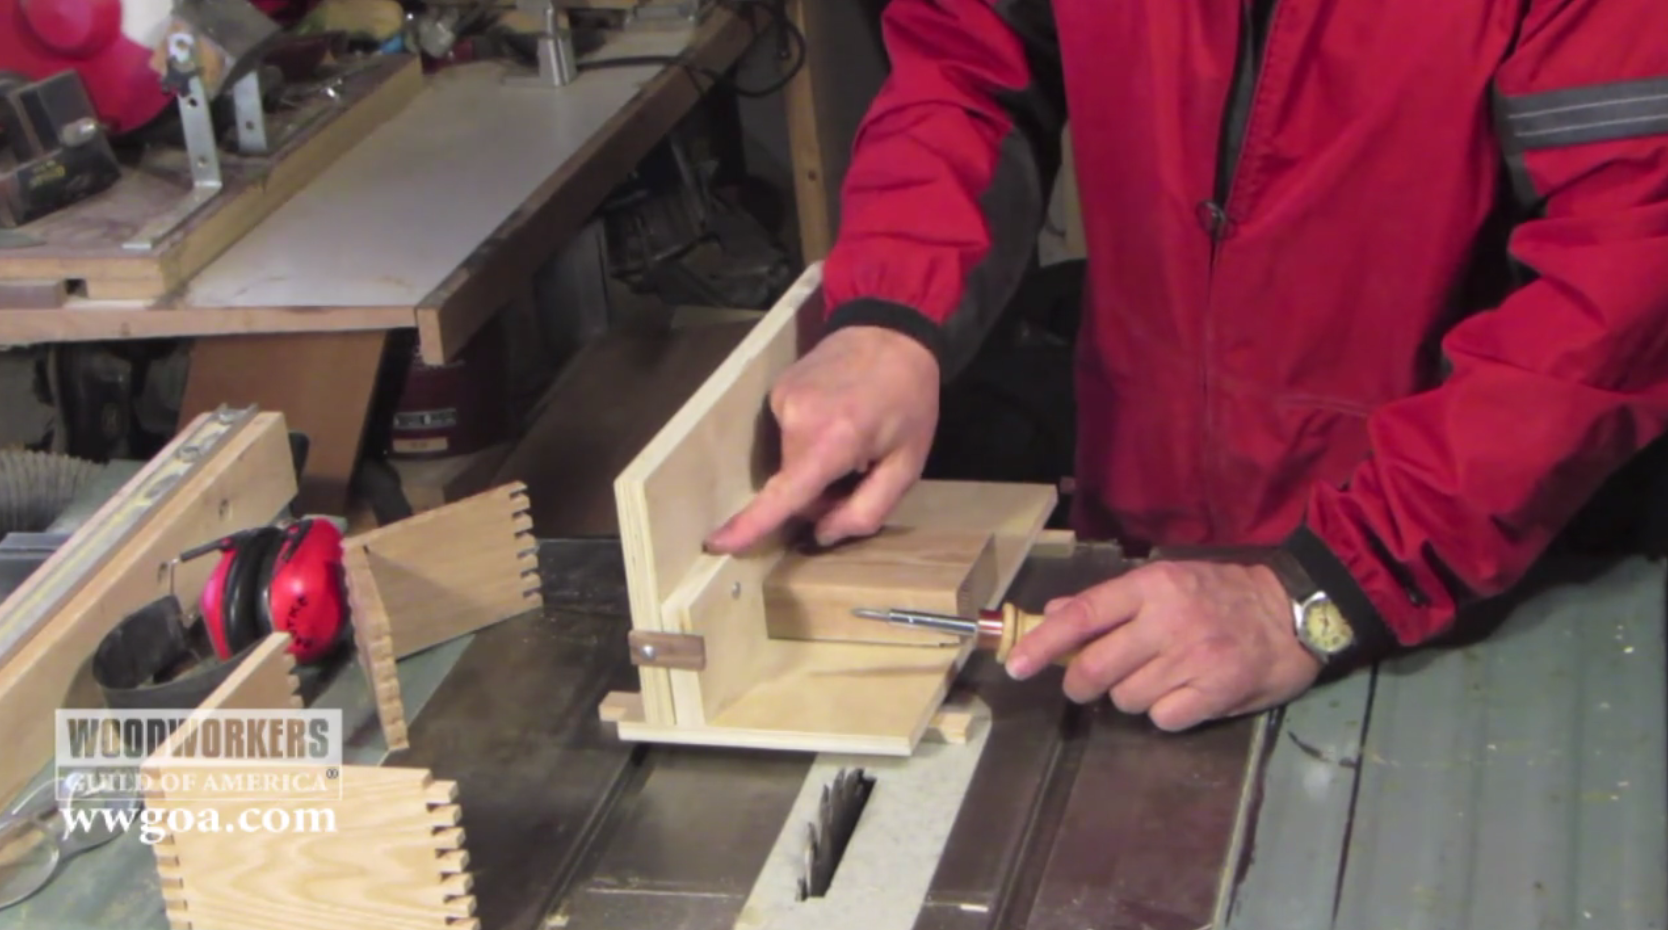 Box Joint Jig Video How To Make A Box Joint Jig For A Tablesaw